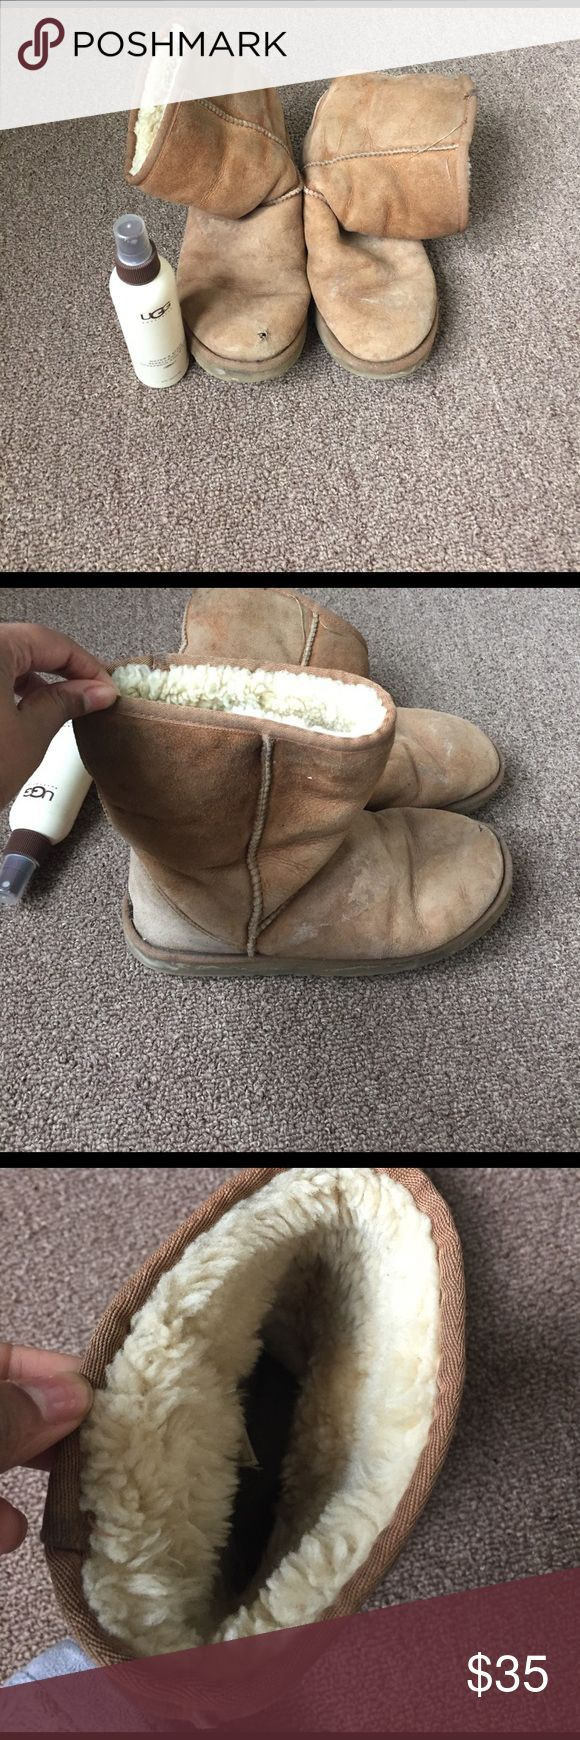 Classic Short Uggs Chestnut Uggs w/ Repellent. Worn. 50% - 60% of spray left. Size 8. UGG Shoes